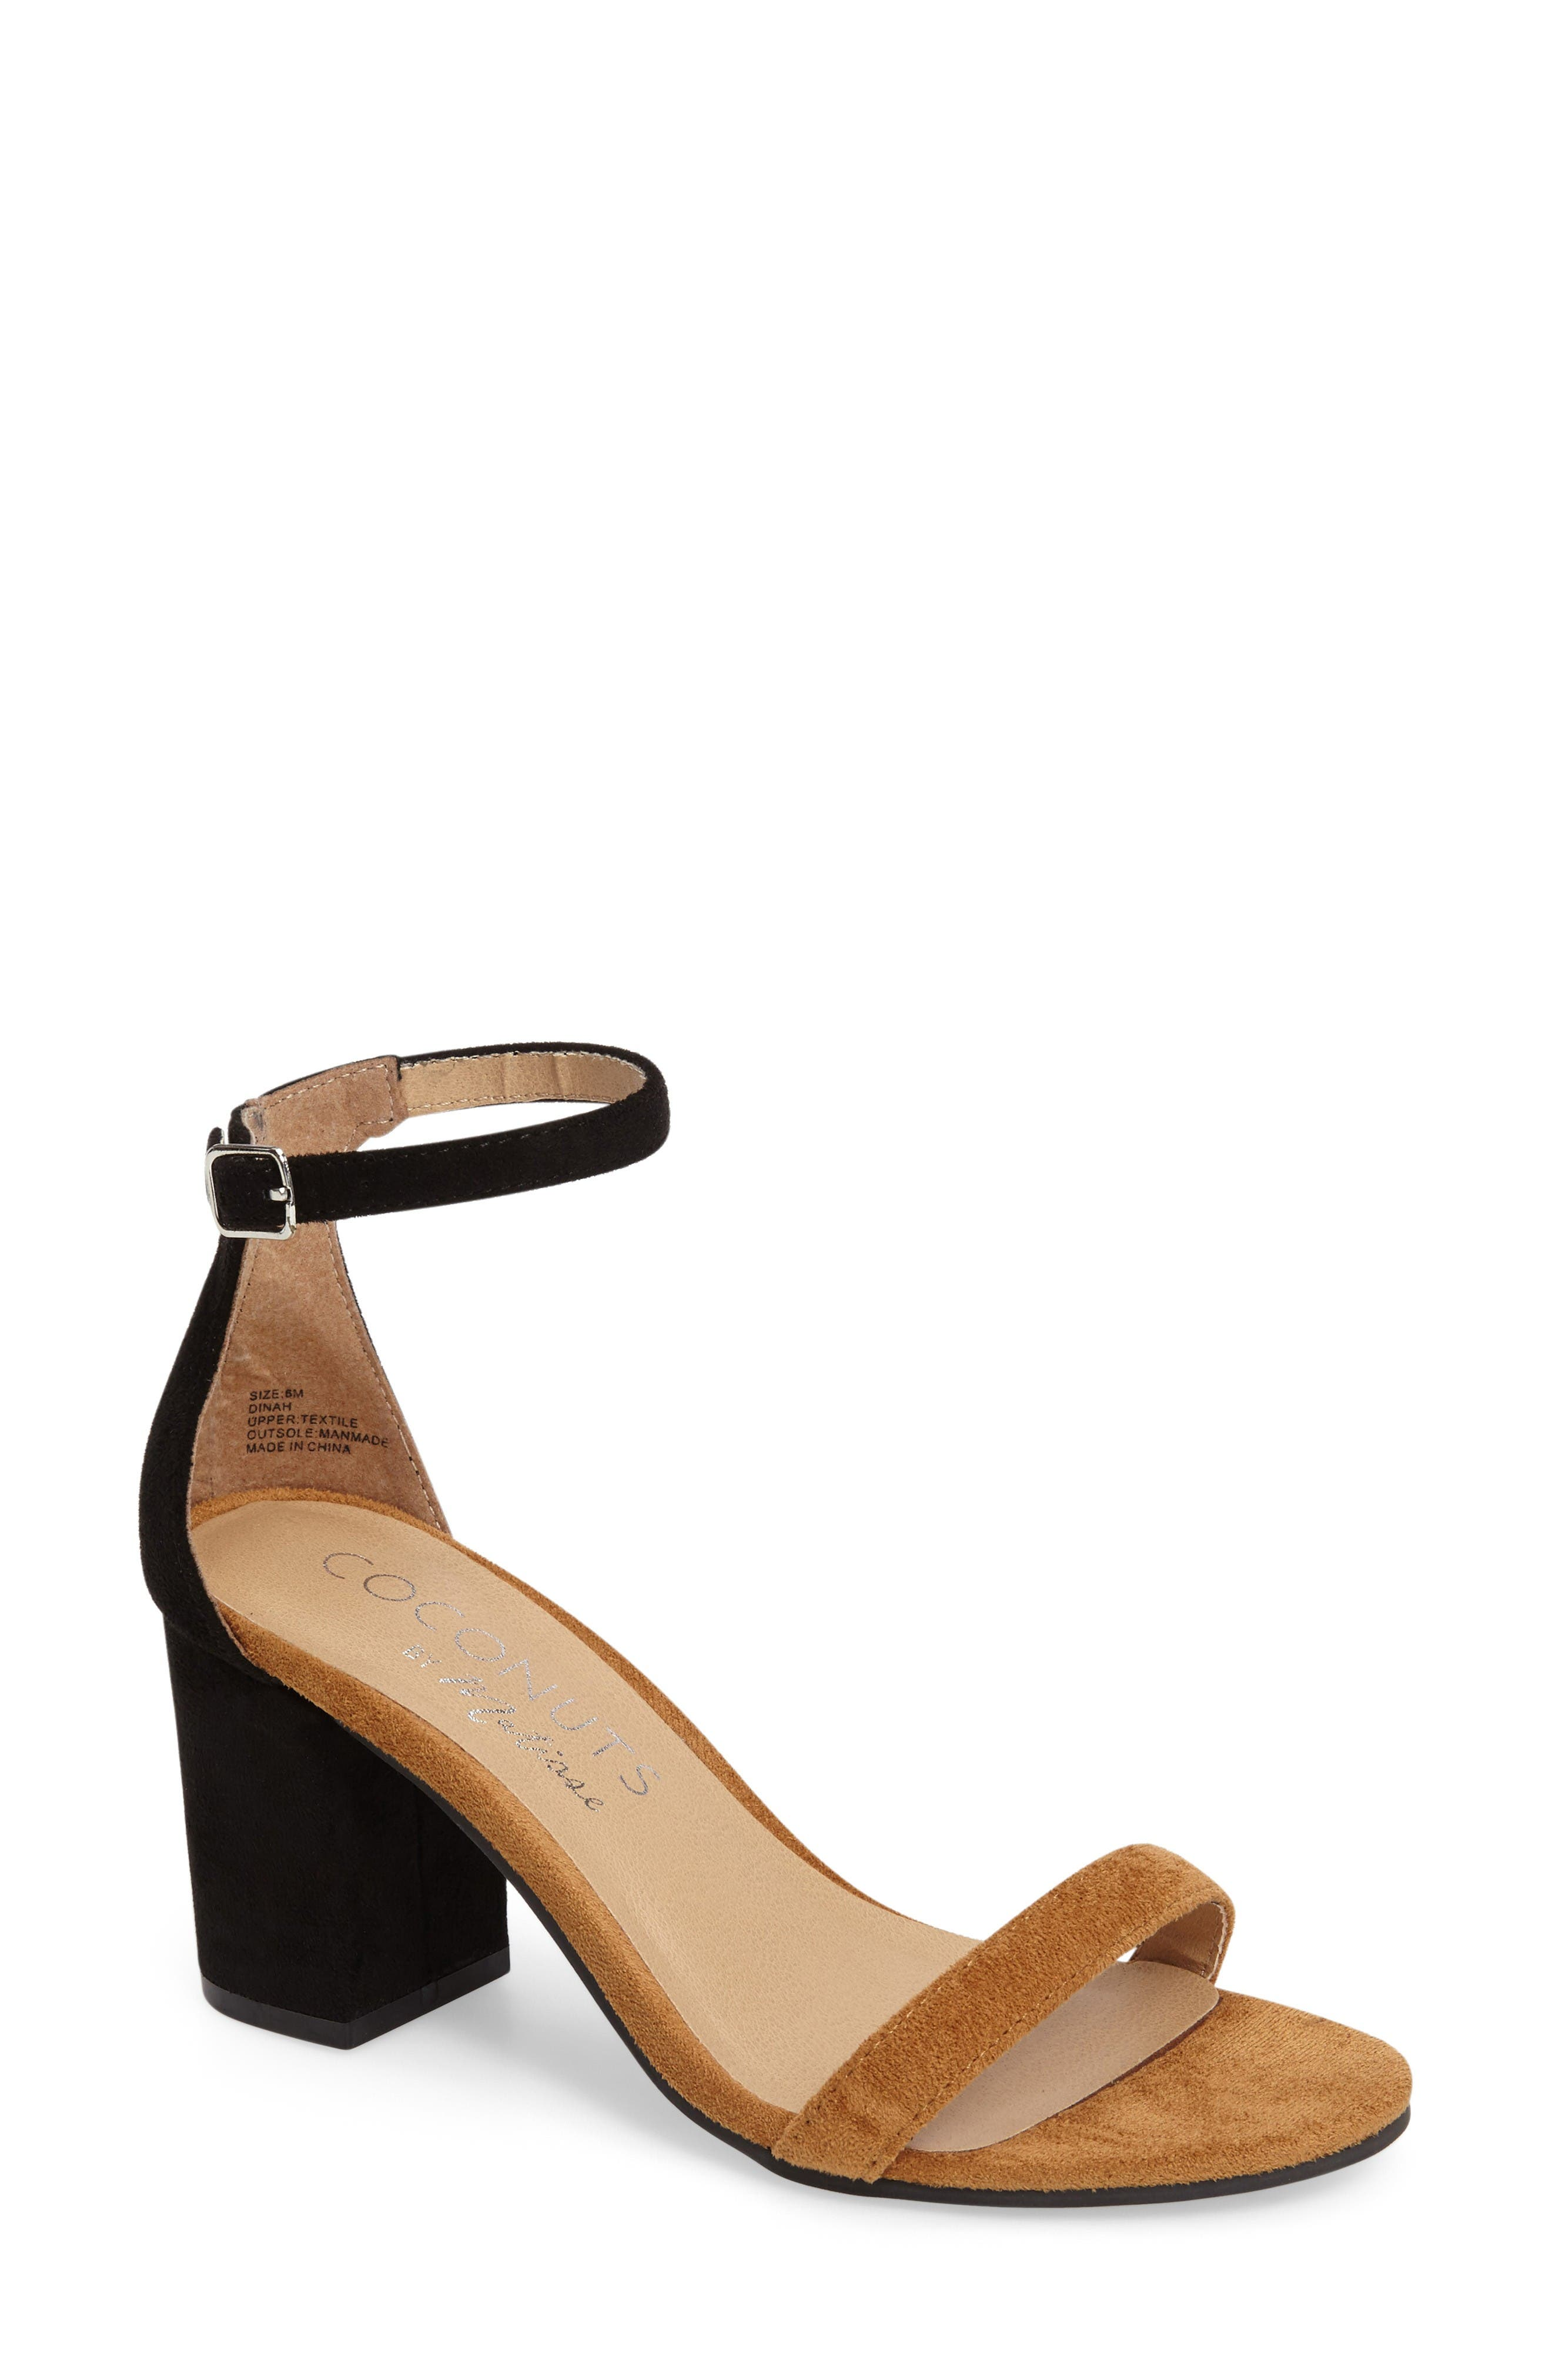 Alternate Image 1 Selected - Coconuts by Matisse Dinah Ankle Strap Sandal (Women)